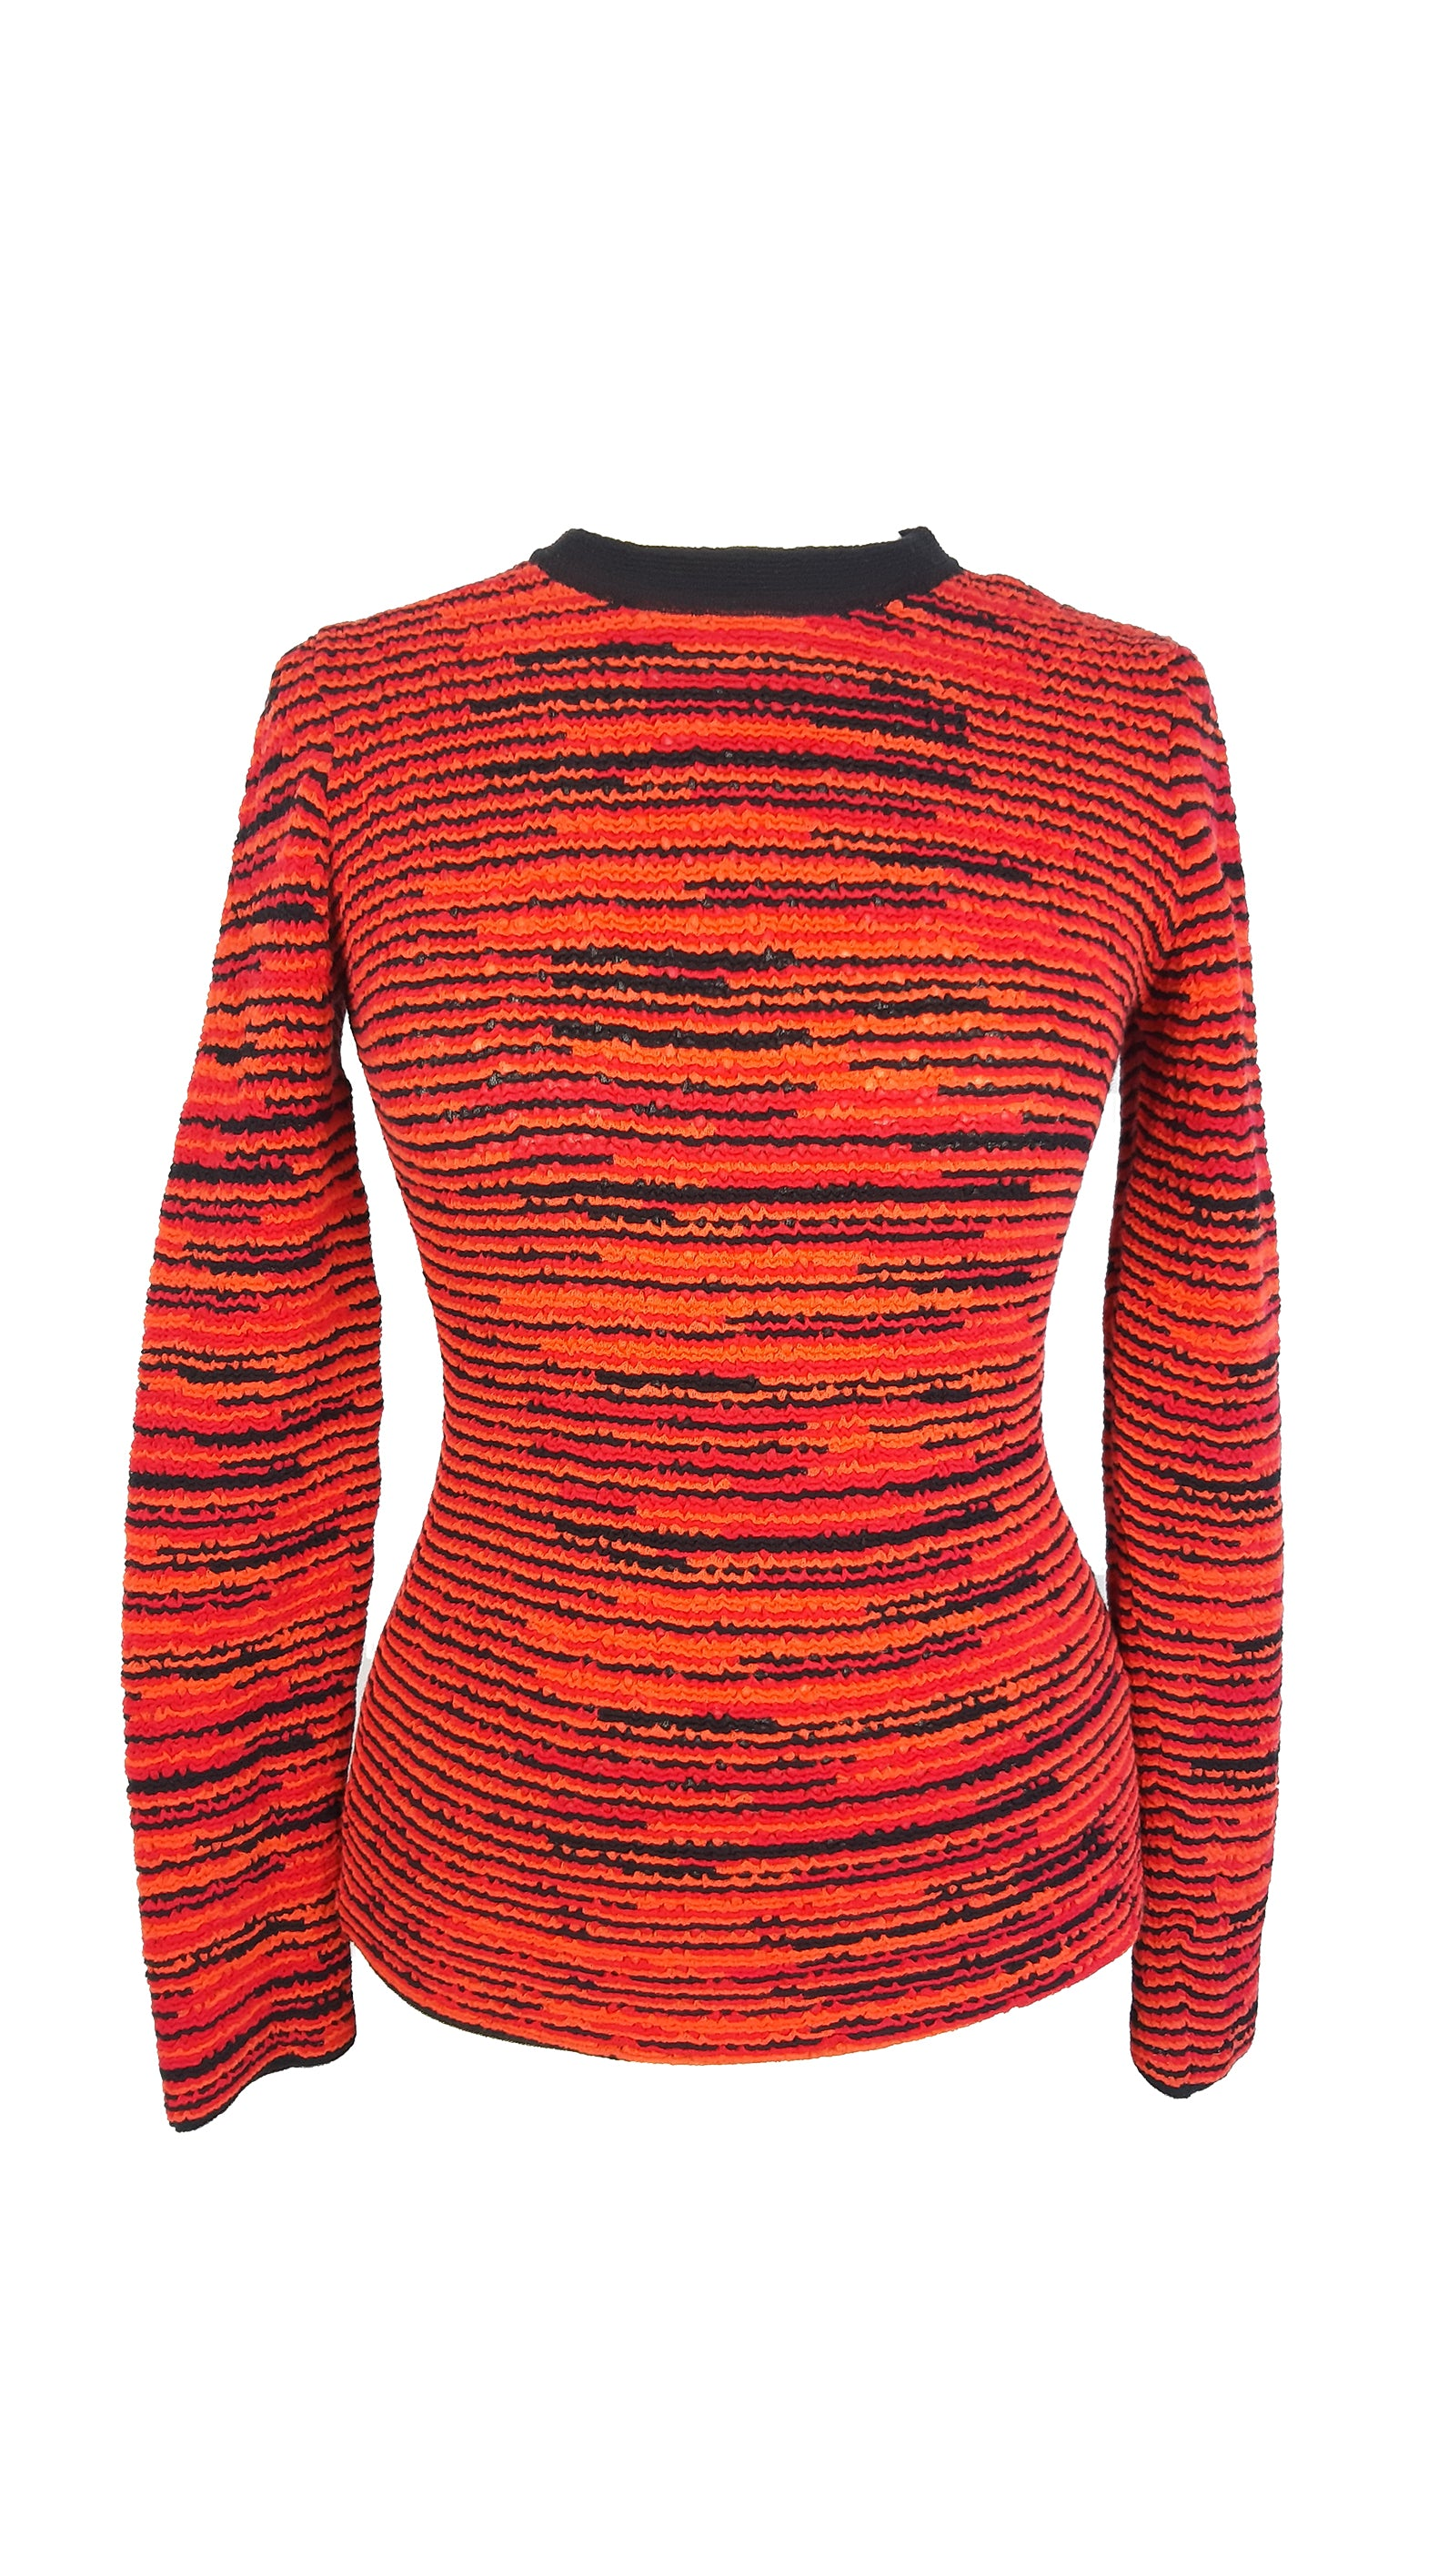 Missoni Black, Orange and  Pink Jumper Size 44 (IT)/ 38 (EU)